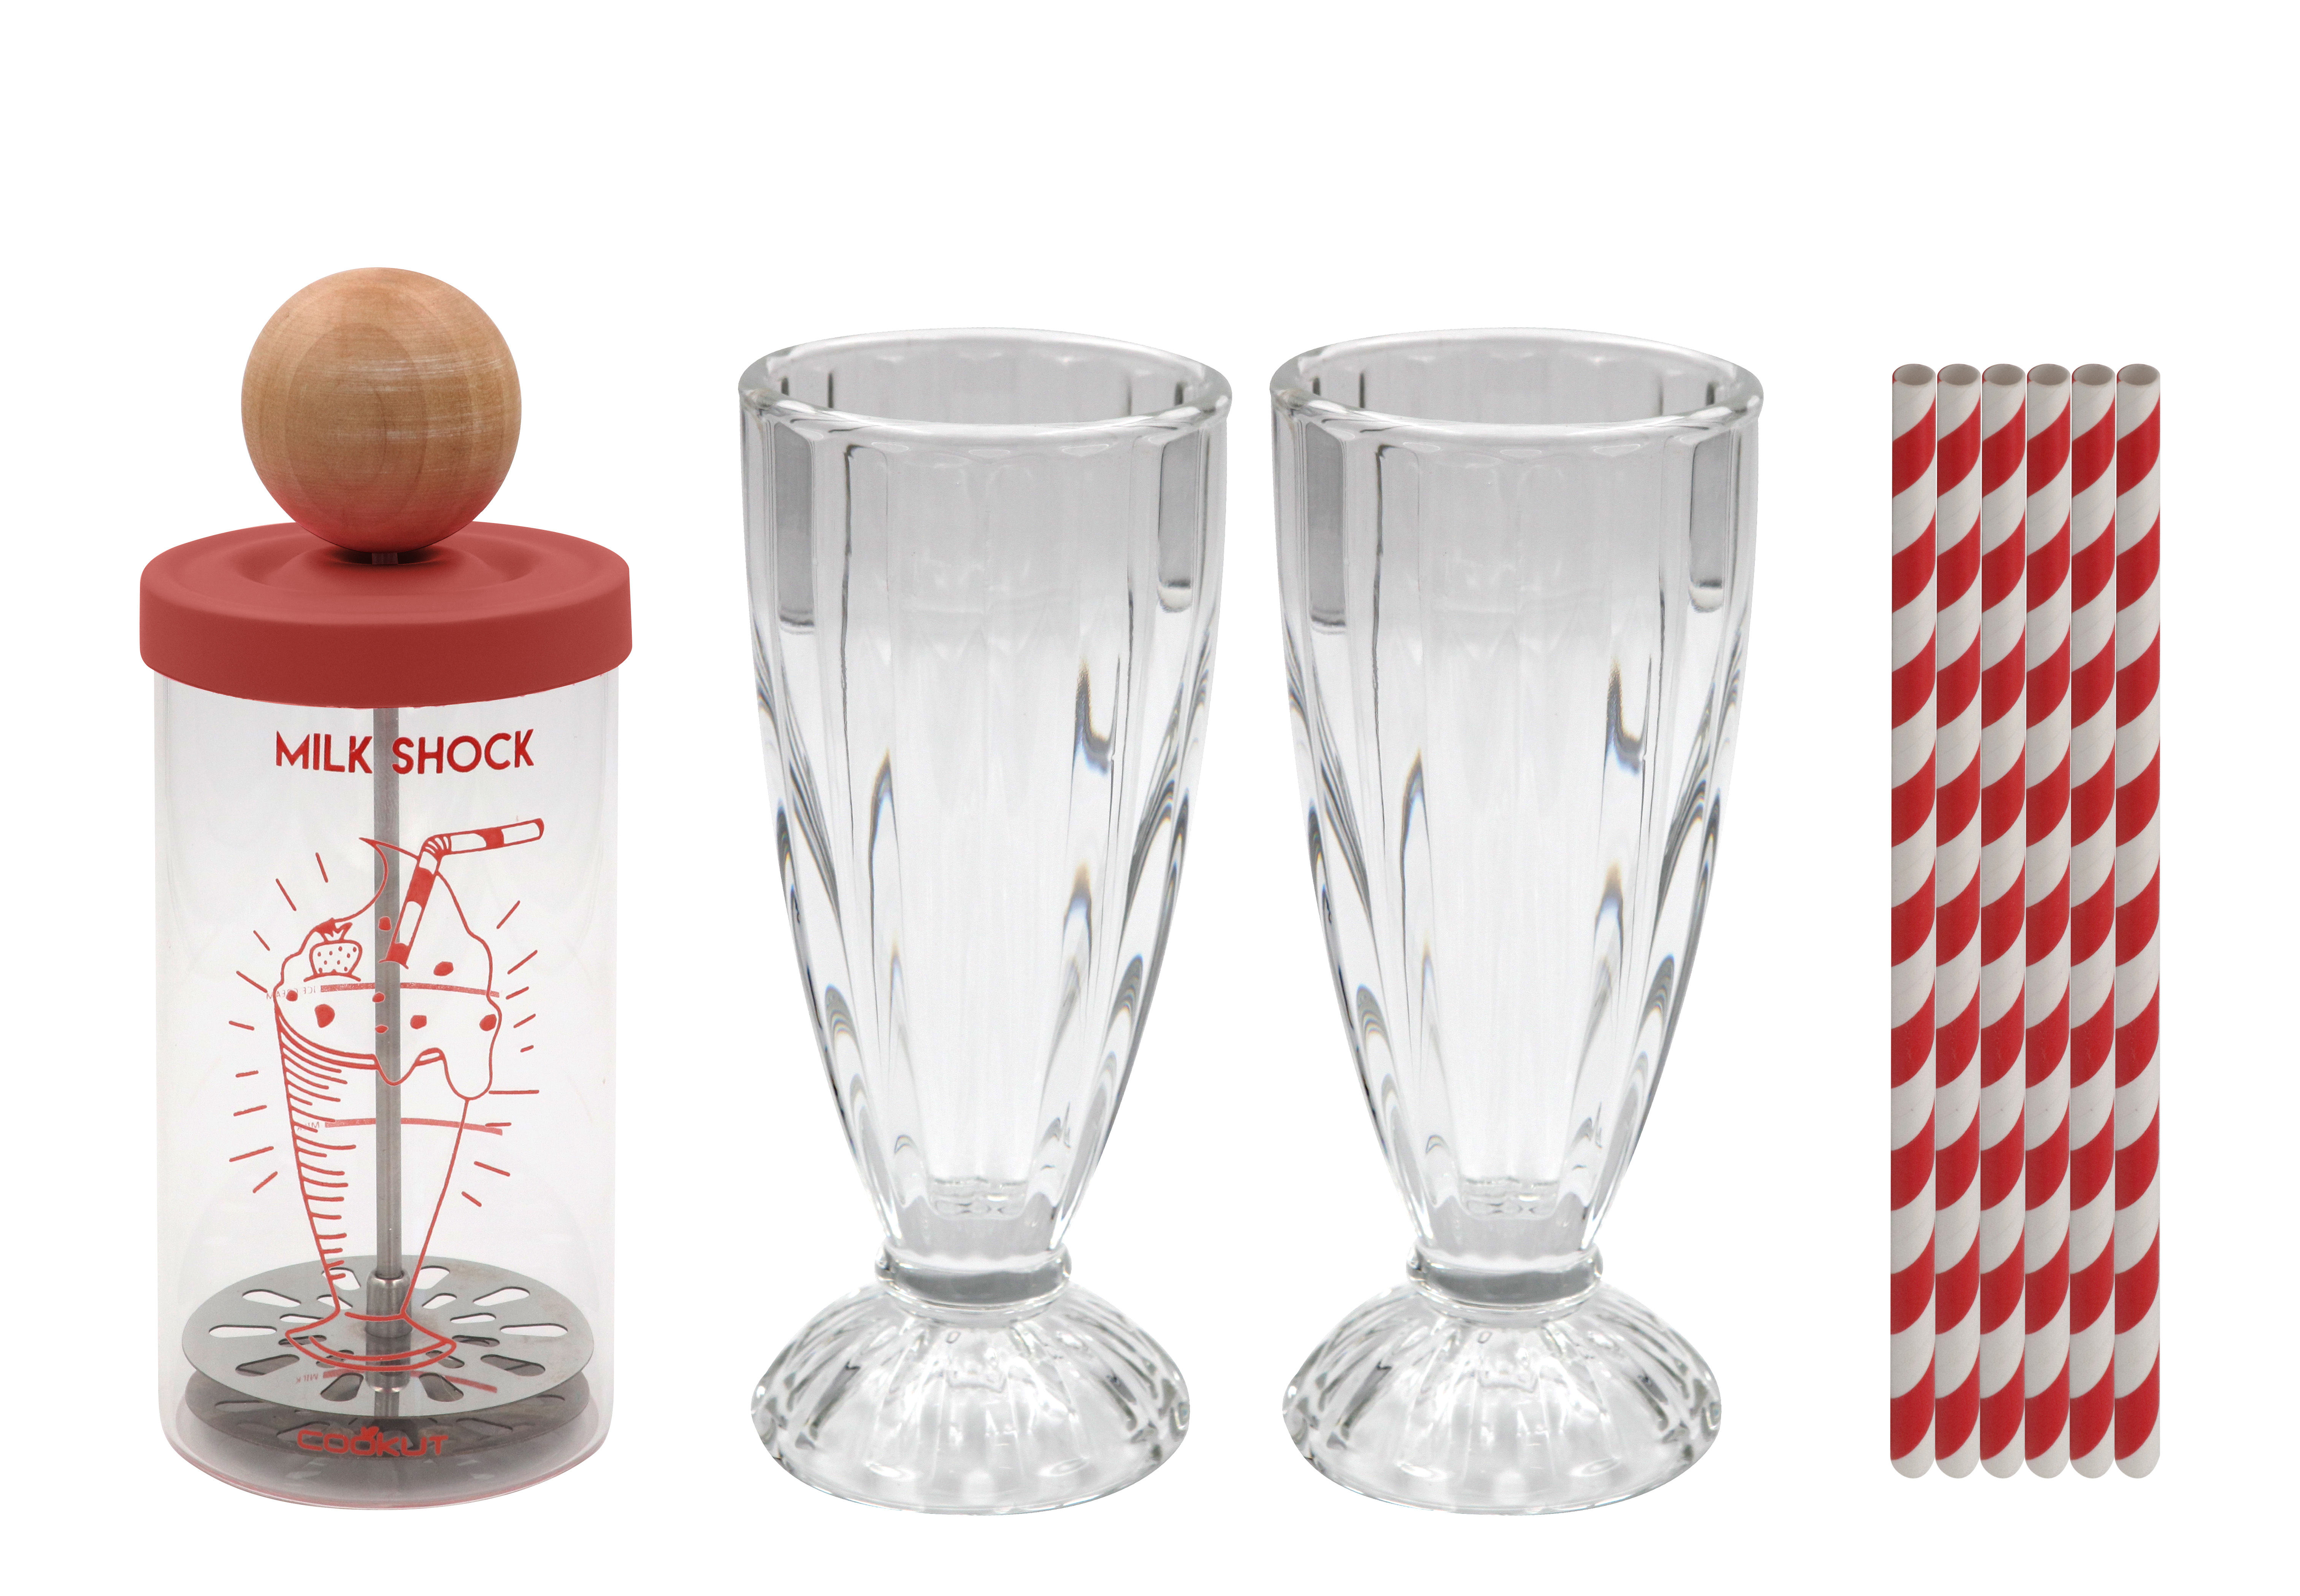 Kitchenware - Kitchen Equipment - Milkshock Shaker - / A milkshake in 30 seconds + 2 glasses & 6 straws by Cookut - Transparent / Wood & red - Glass, Metal, Silicone, Wood